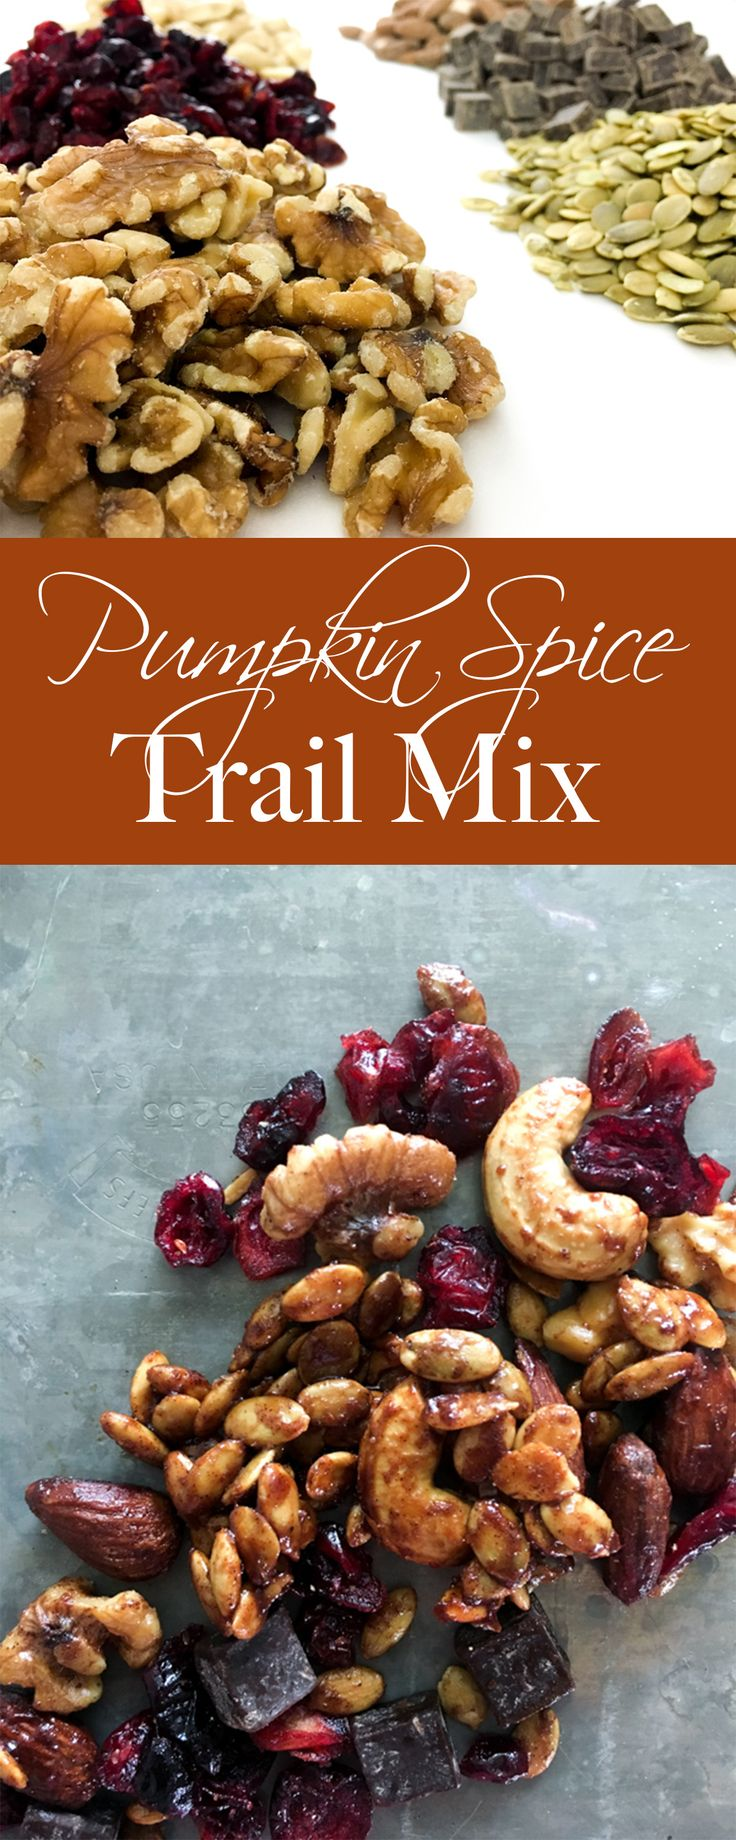 All the flavors of fall and pumpkin in a healthy trail mix.